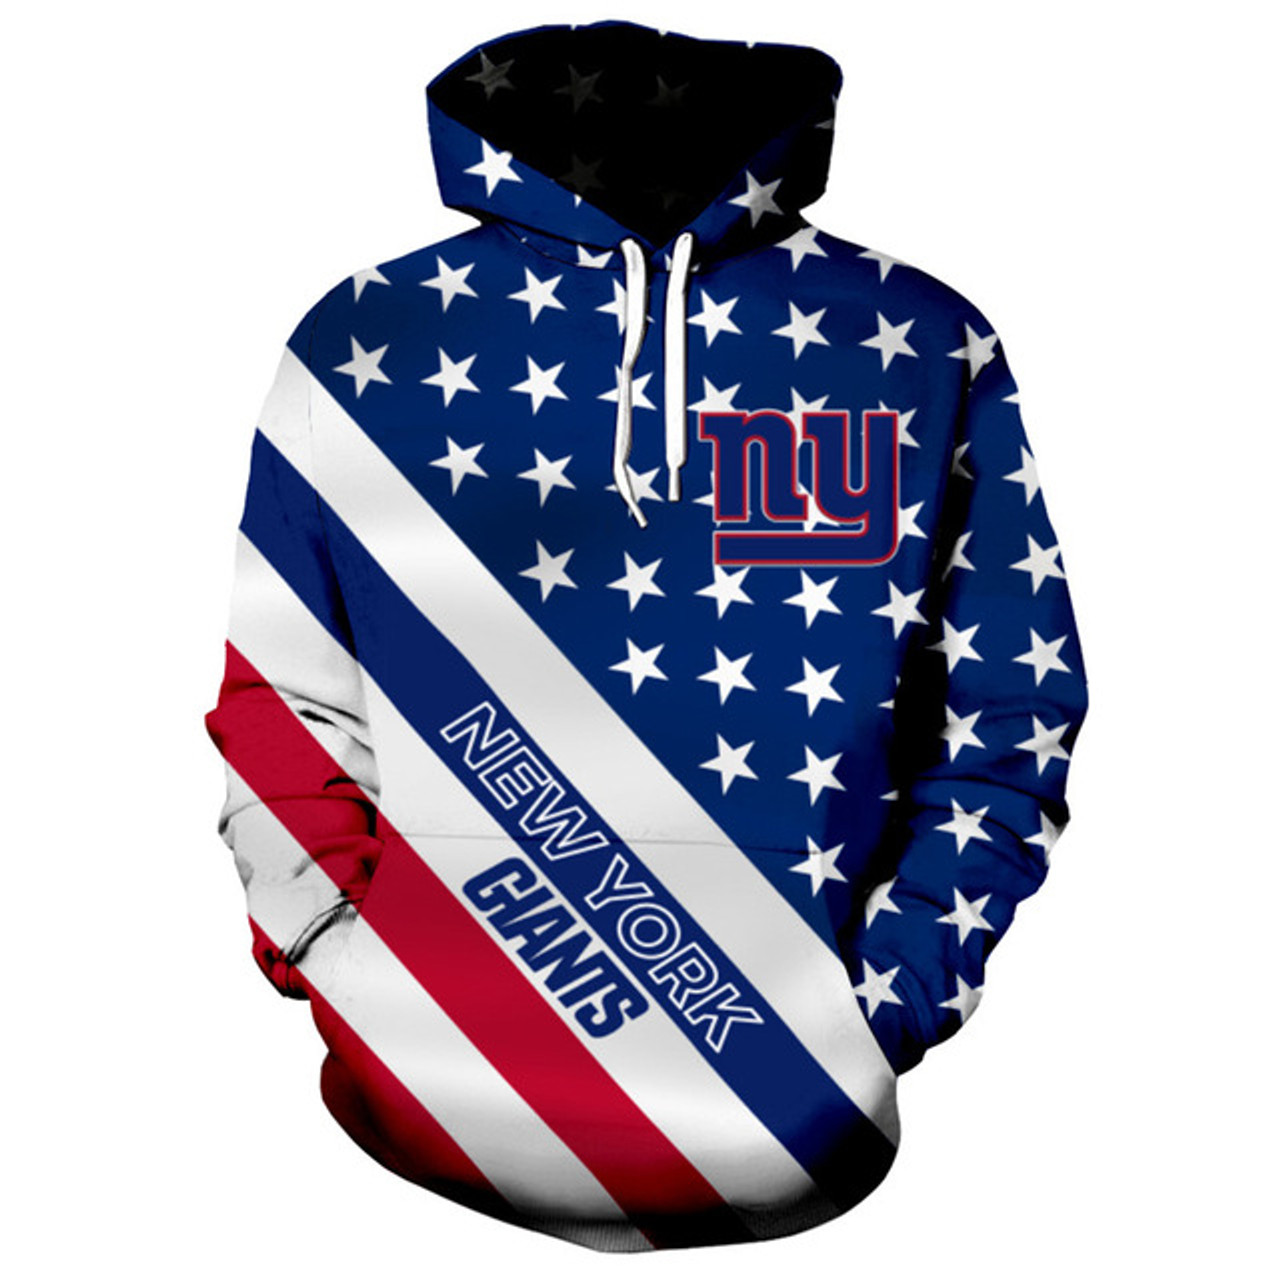 pretty nice bfeb3 58c8f **(OFFICIALLY-LICENSED-N.F.L.NEW-YORK-GIANTS-TRENDY-PATRIOTIC-PULLOVER-TEAM-HOODIES/NICE-CUSTOM-3D-EFFECT-GRAPHIC-PRINTED-DOUBLE-SIDED-ALL-OVER-OFFICI...